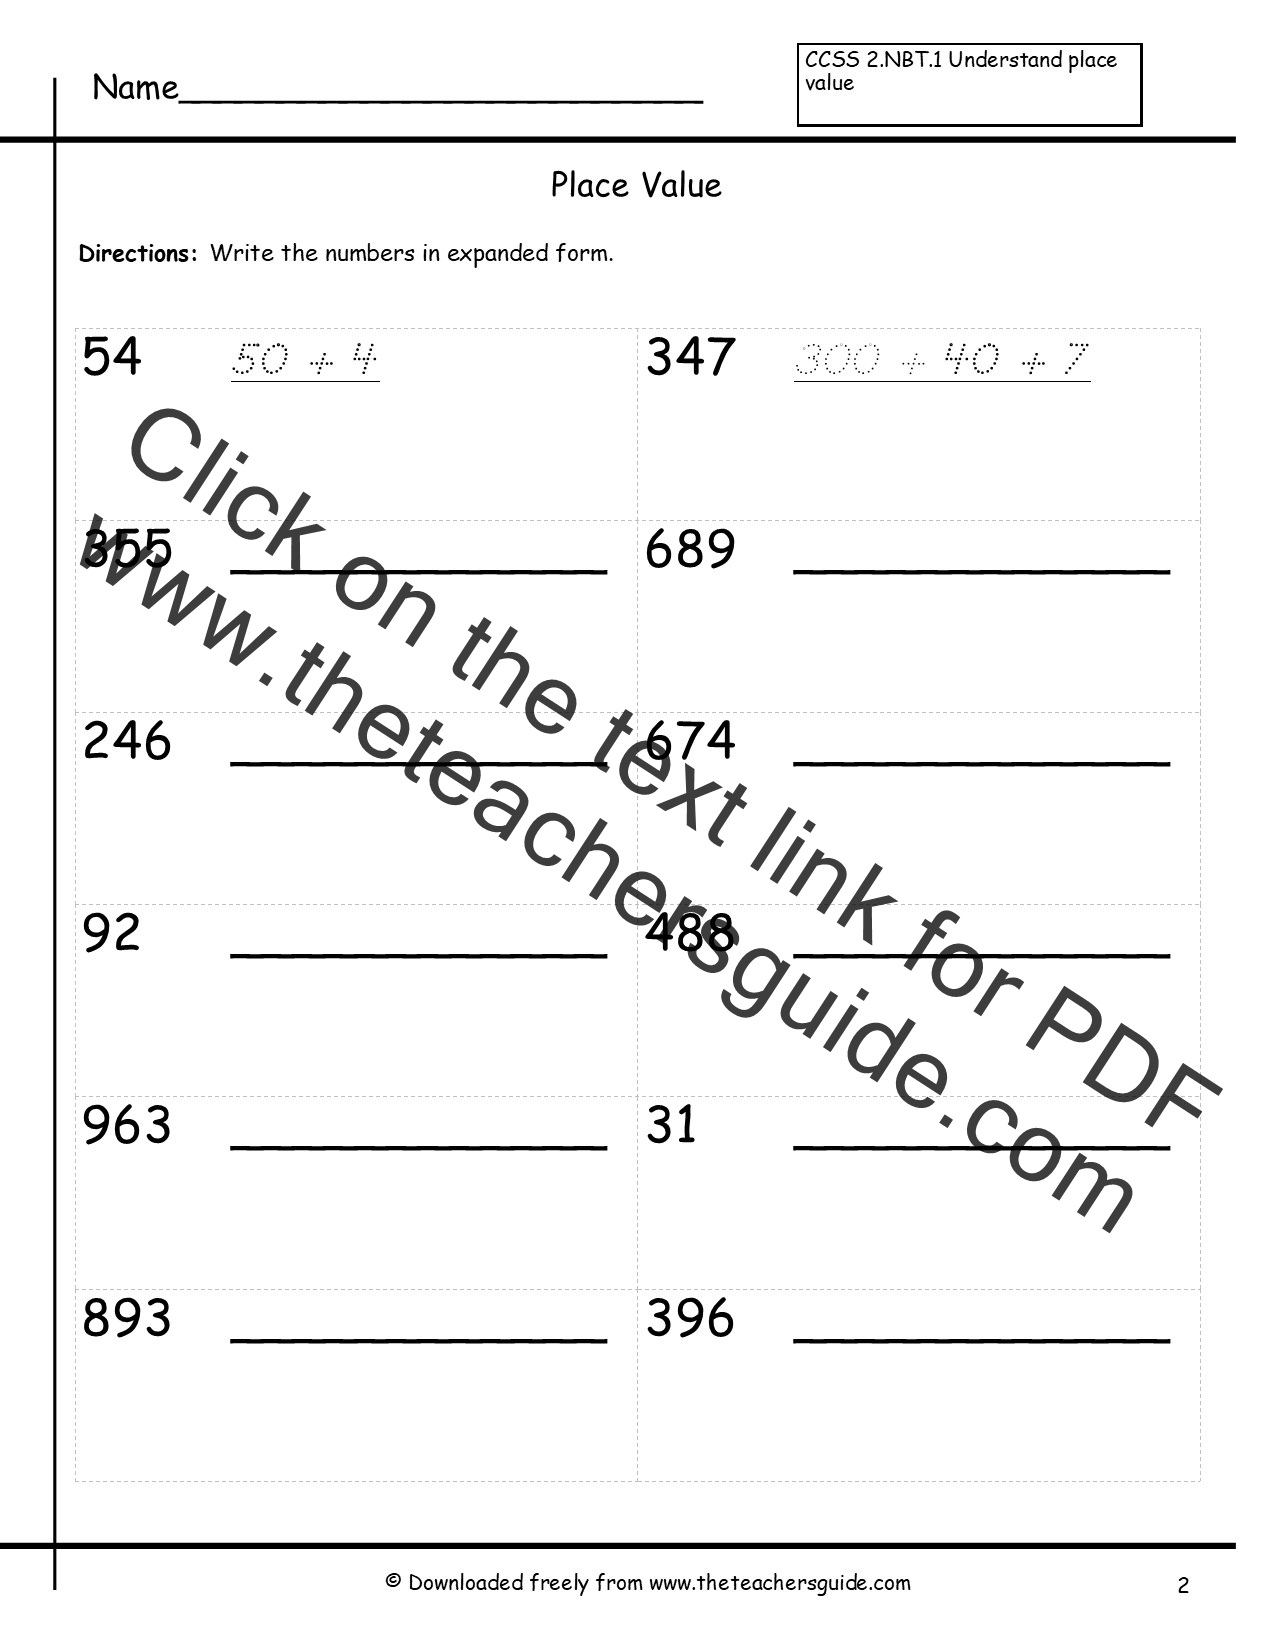 Writing Decimals In Expanded Form With Exponents Worksheet